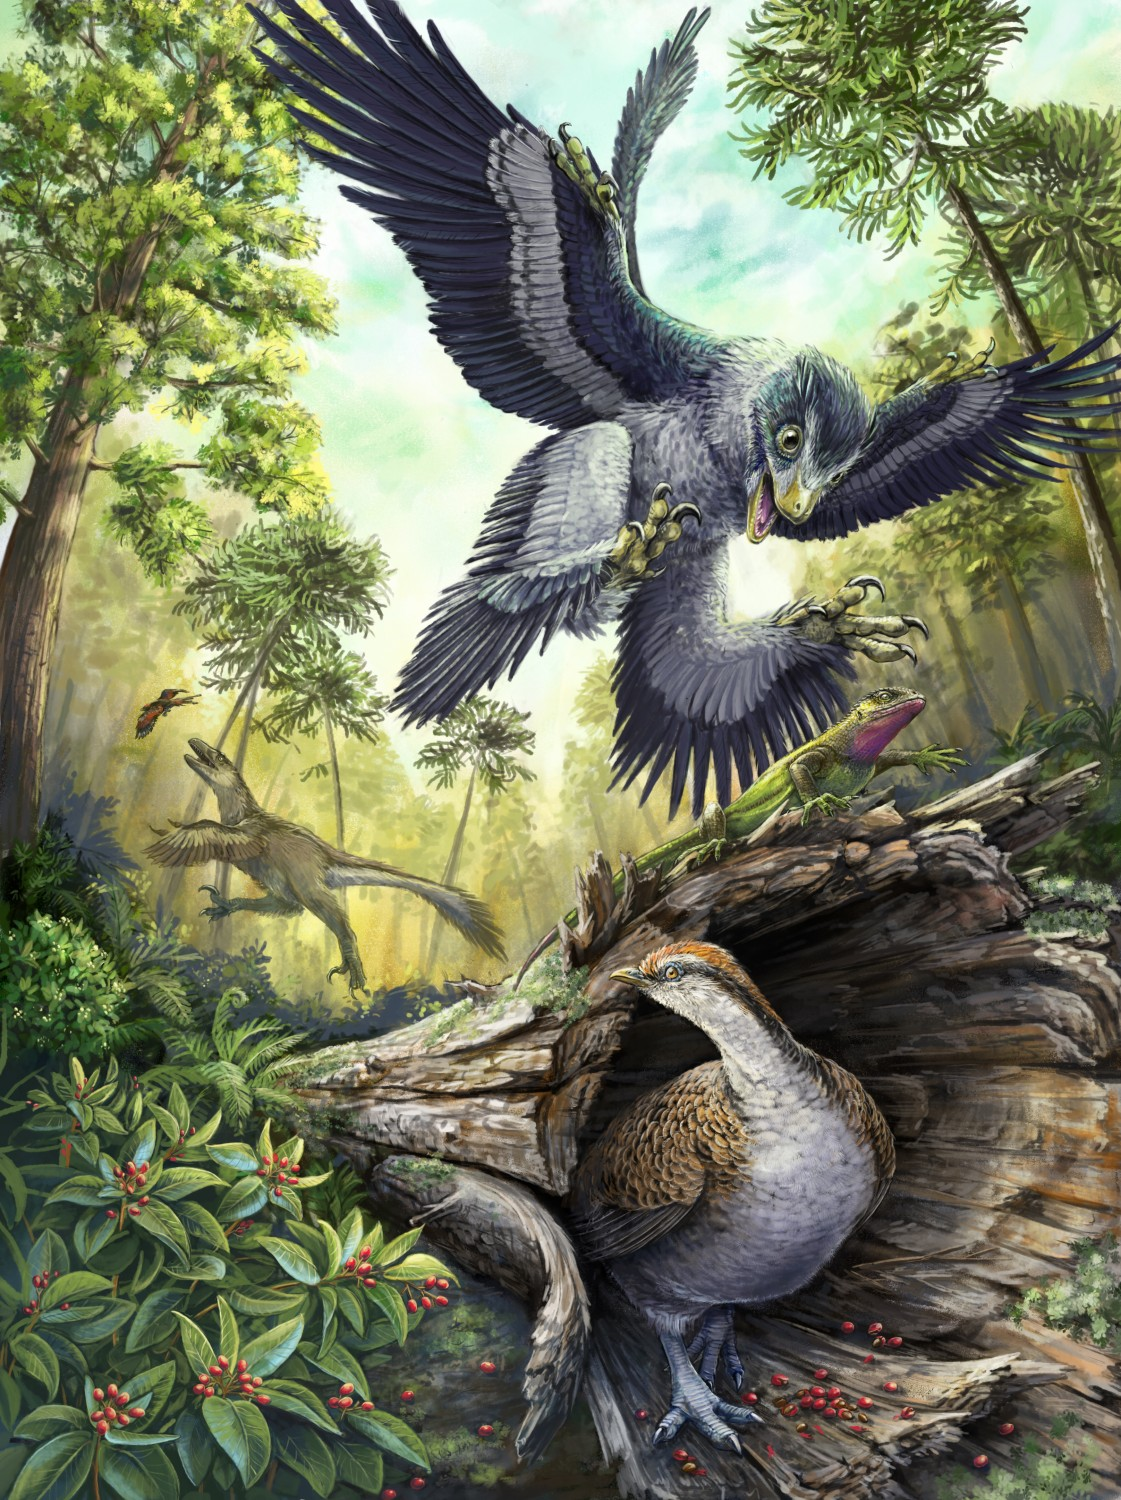 evidence suggest birds ancestors were the dinosaurs - suggests birds appeared much later, in the triassic, after dinosaurs had radiated into many different lineages (including the theropods) - many think dromaeosaurs (carnivorous, bipedal dinosaurs), were the specific theropods from which birds evolved.